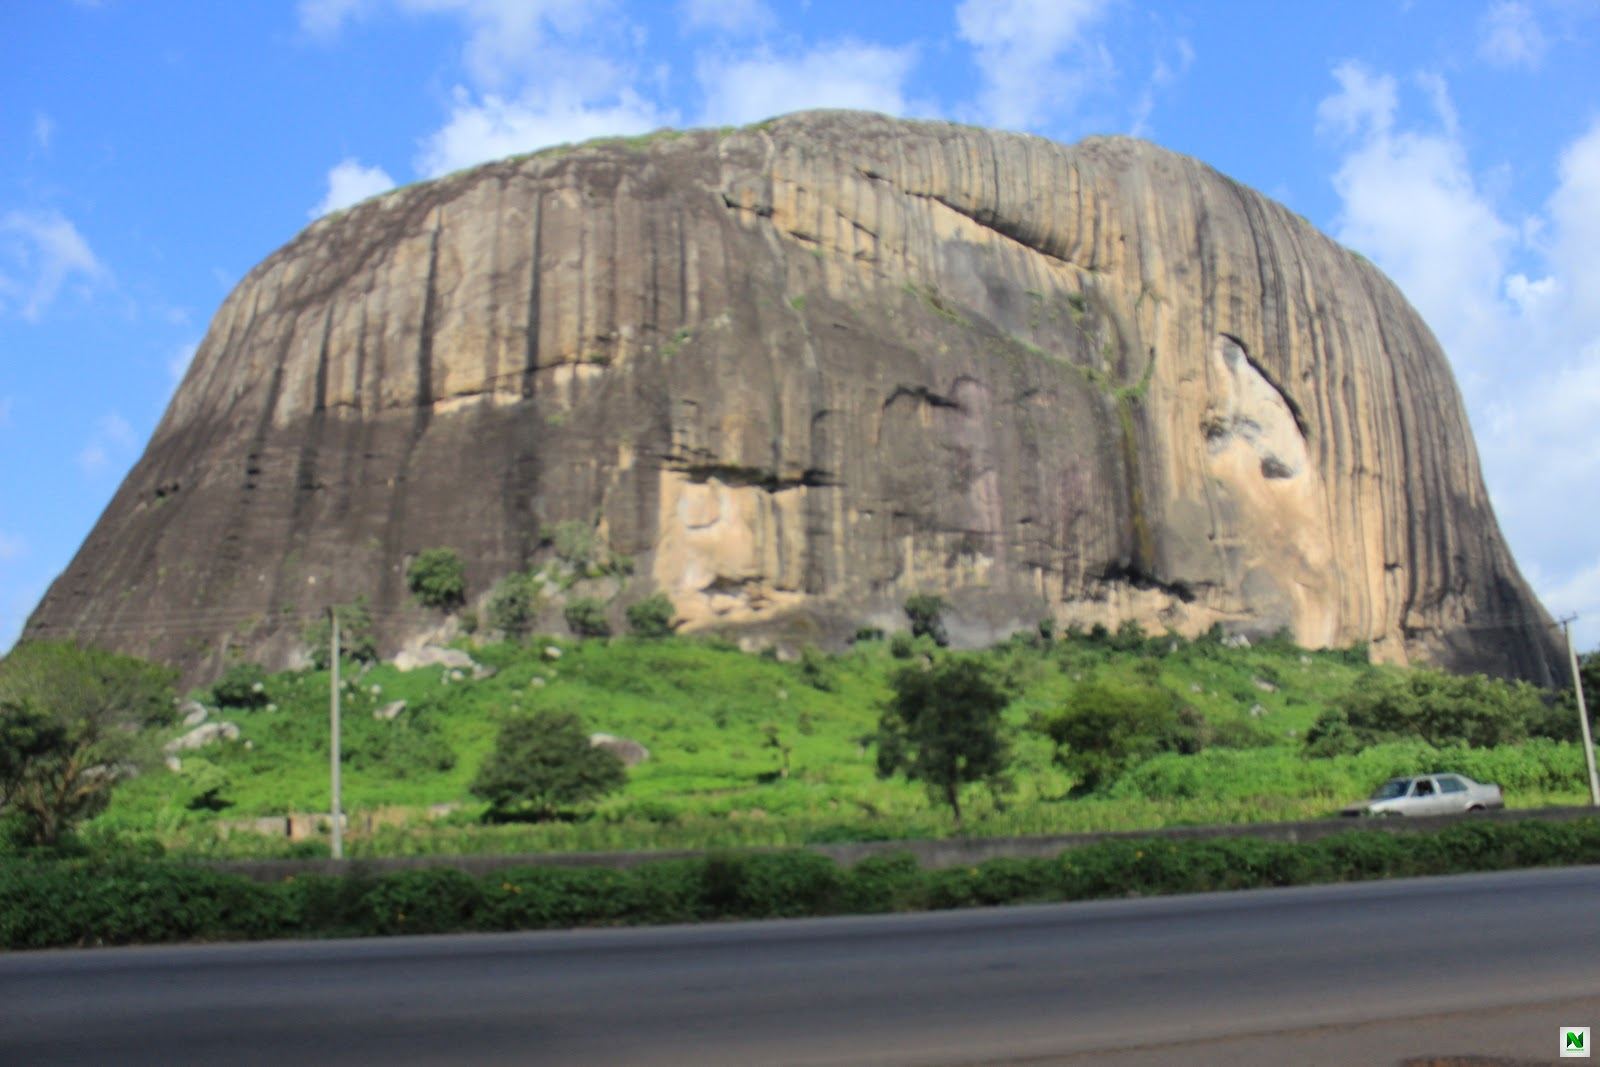 Ten Beautiful Places You Must Visit in Nigeria